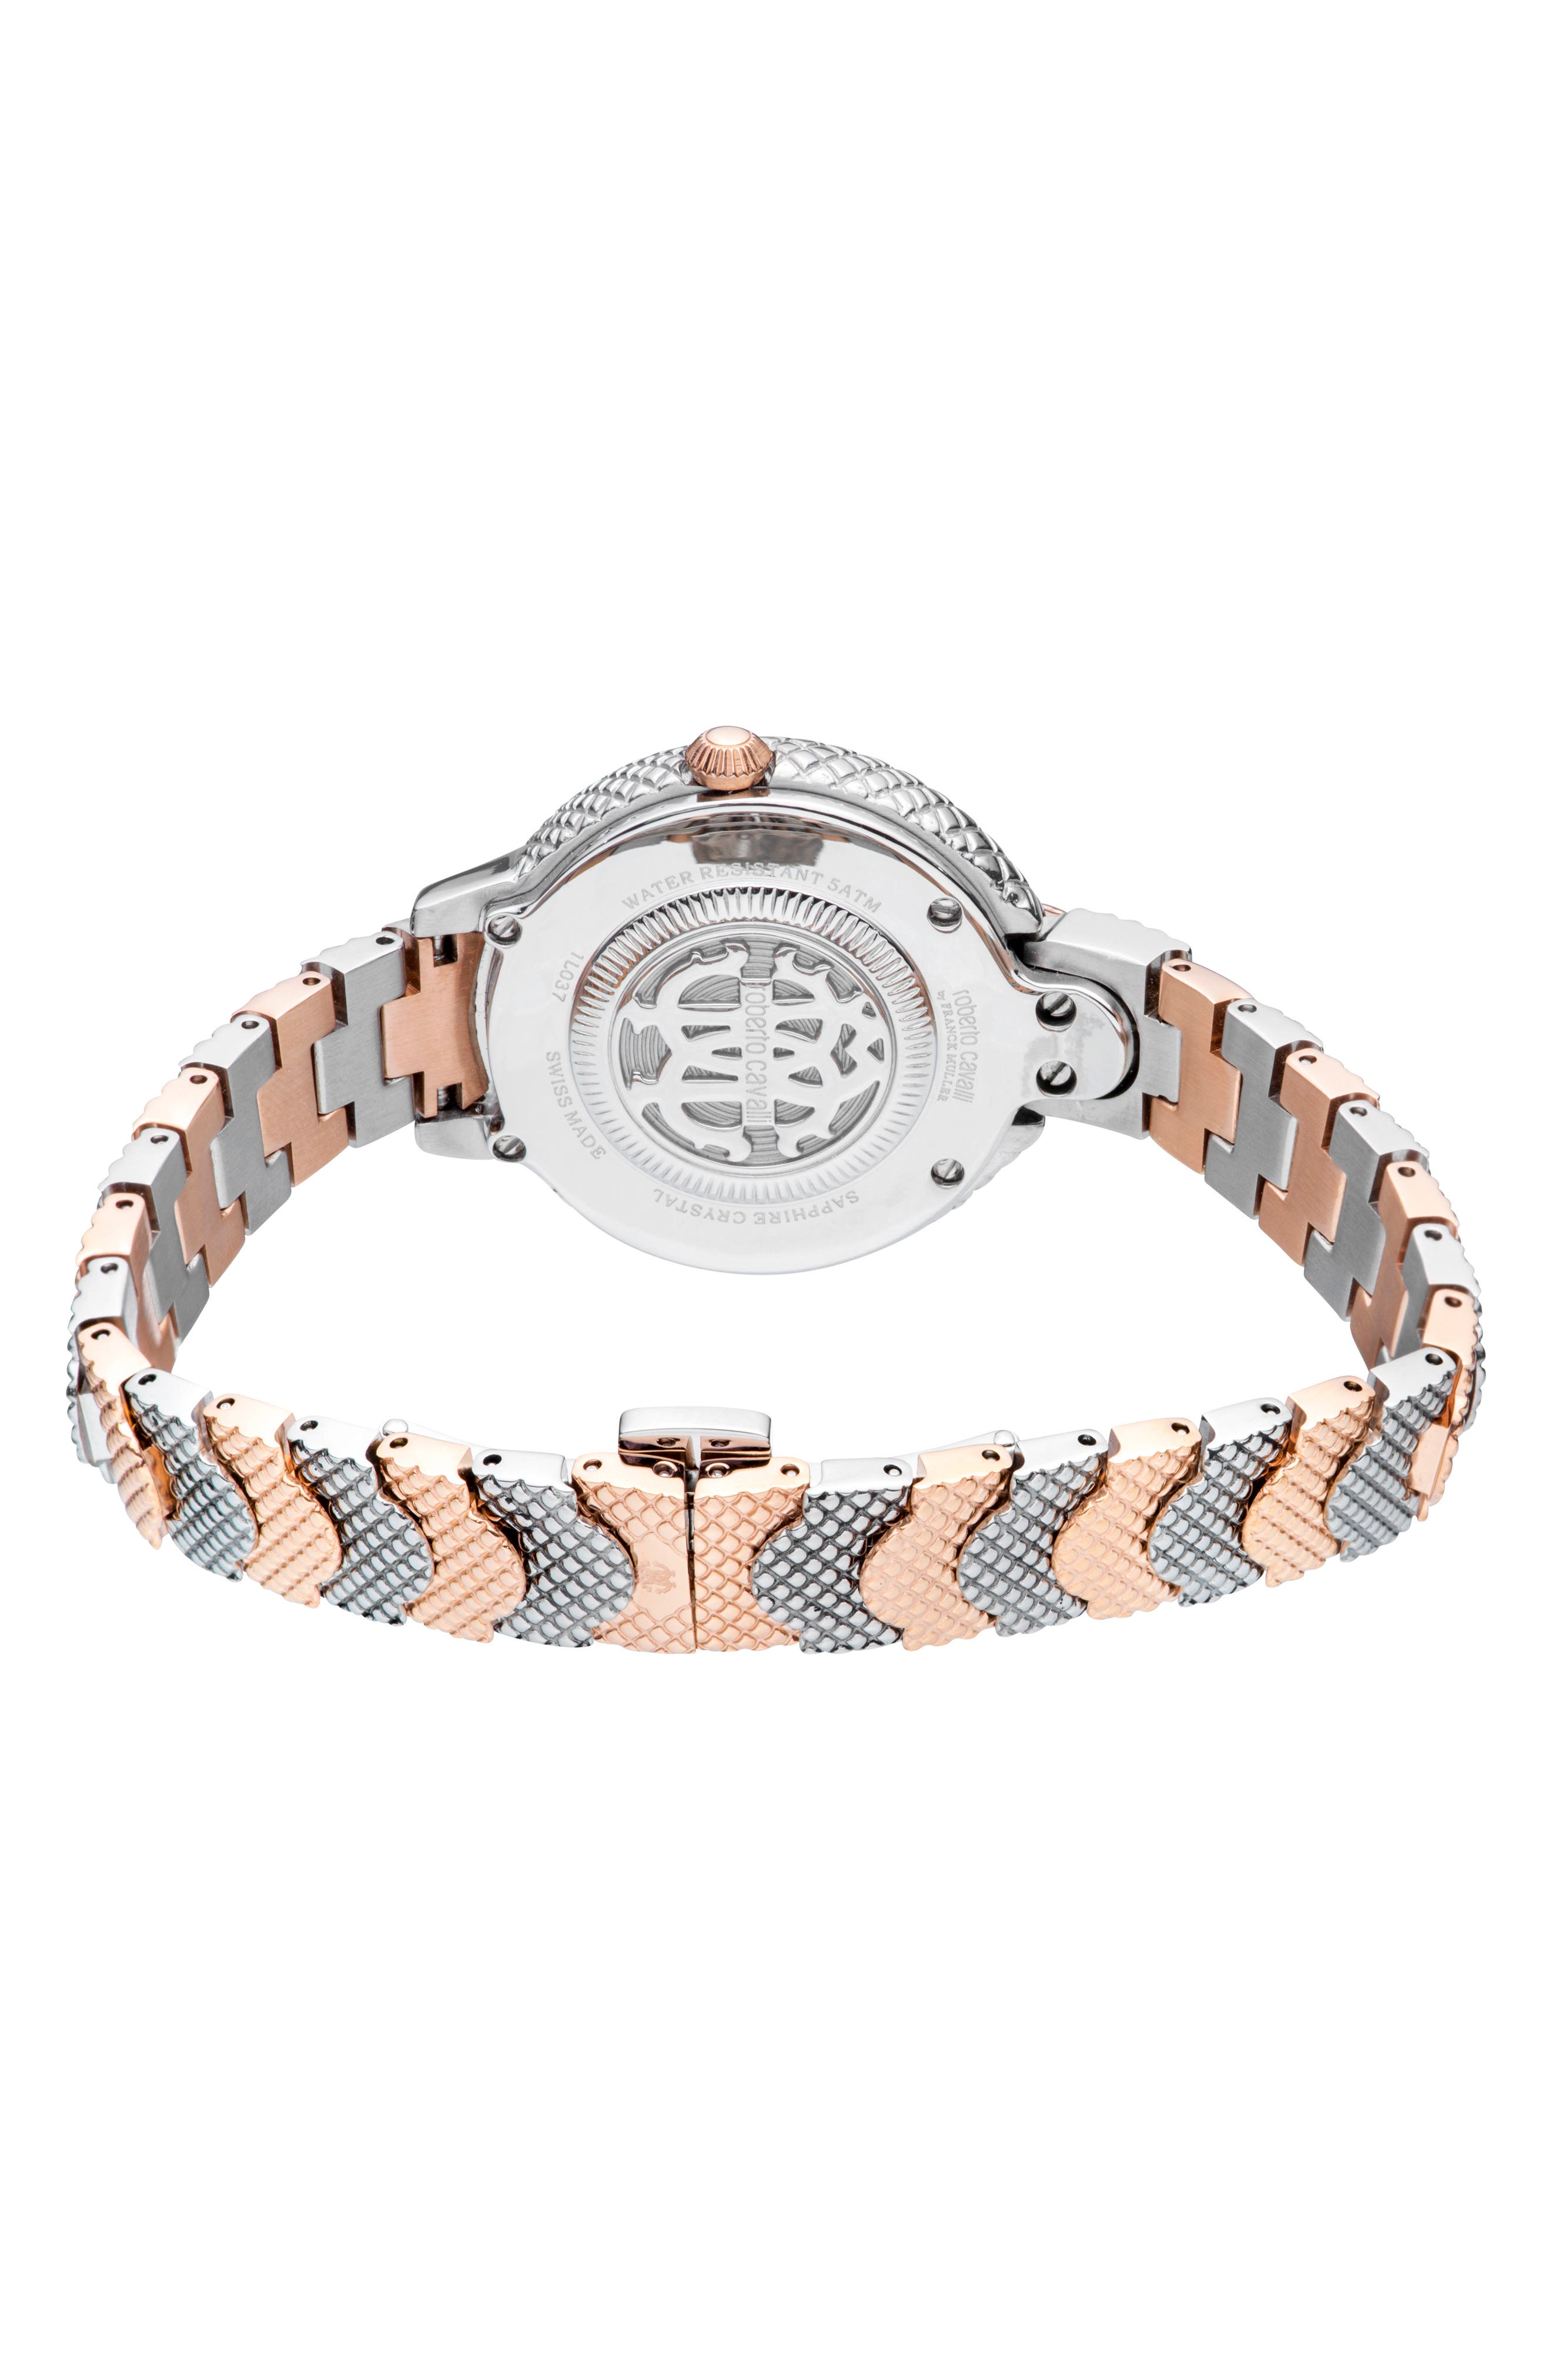 Scale Bracelet Watch,                             Alternate thumbnail 2, color,                             ROSE GOLD/ SILVER